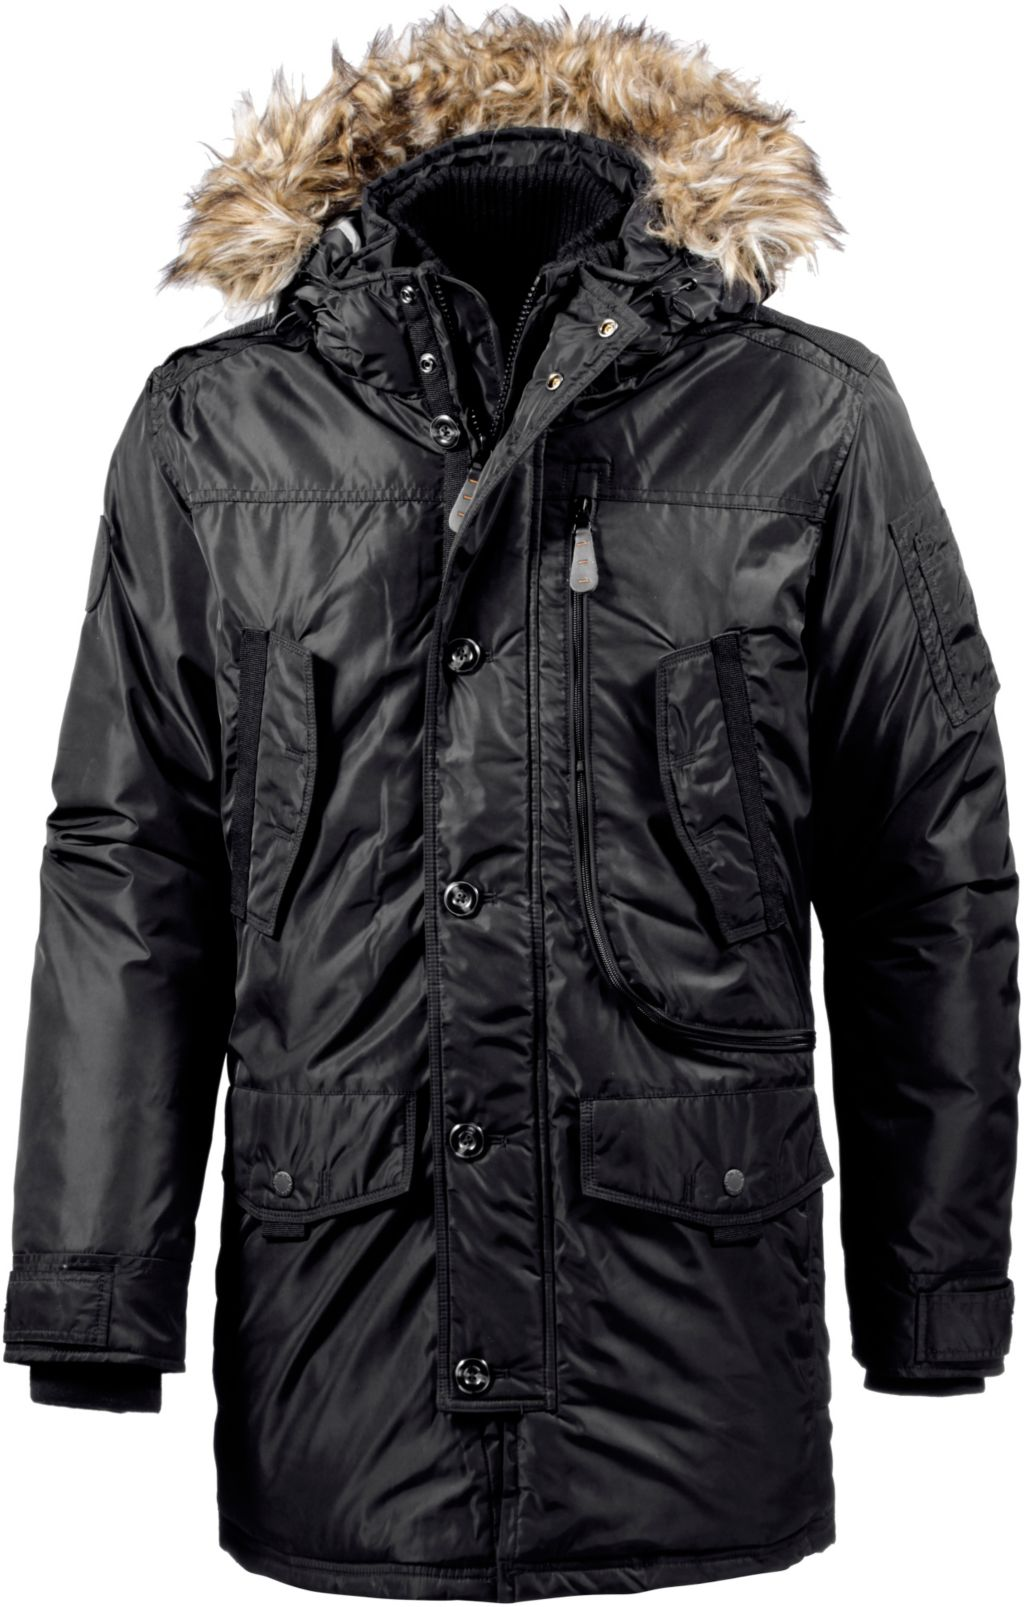 tom tailor parka herren in schwarz gr e xl tom tailor 5 95 versand. Black Bedroom Furniture Sets. Home Design Ideas